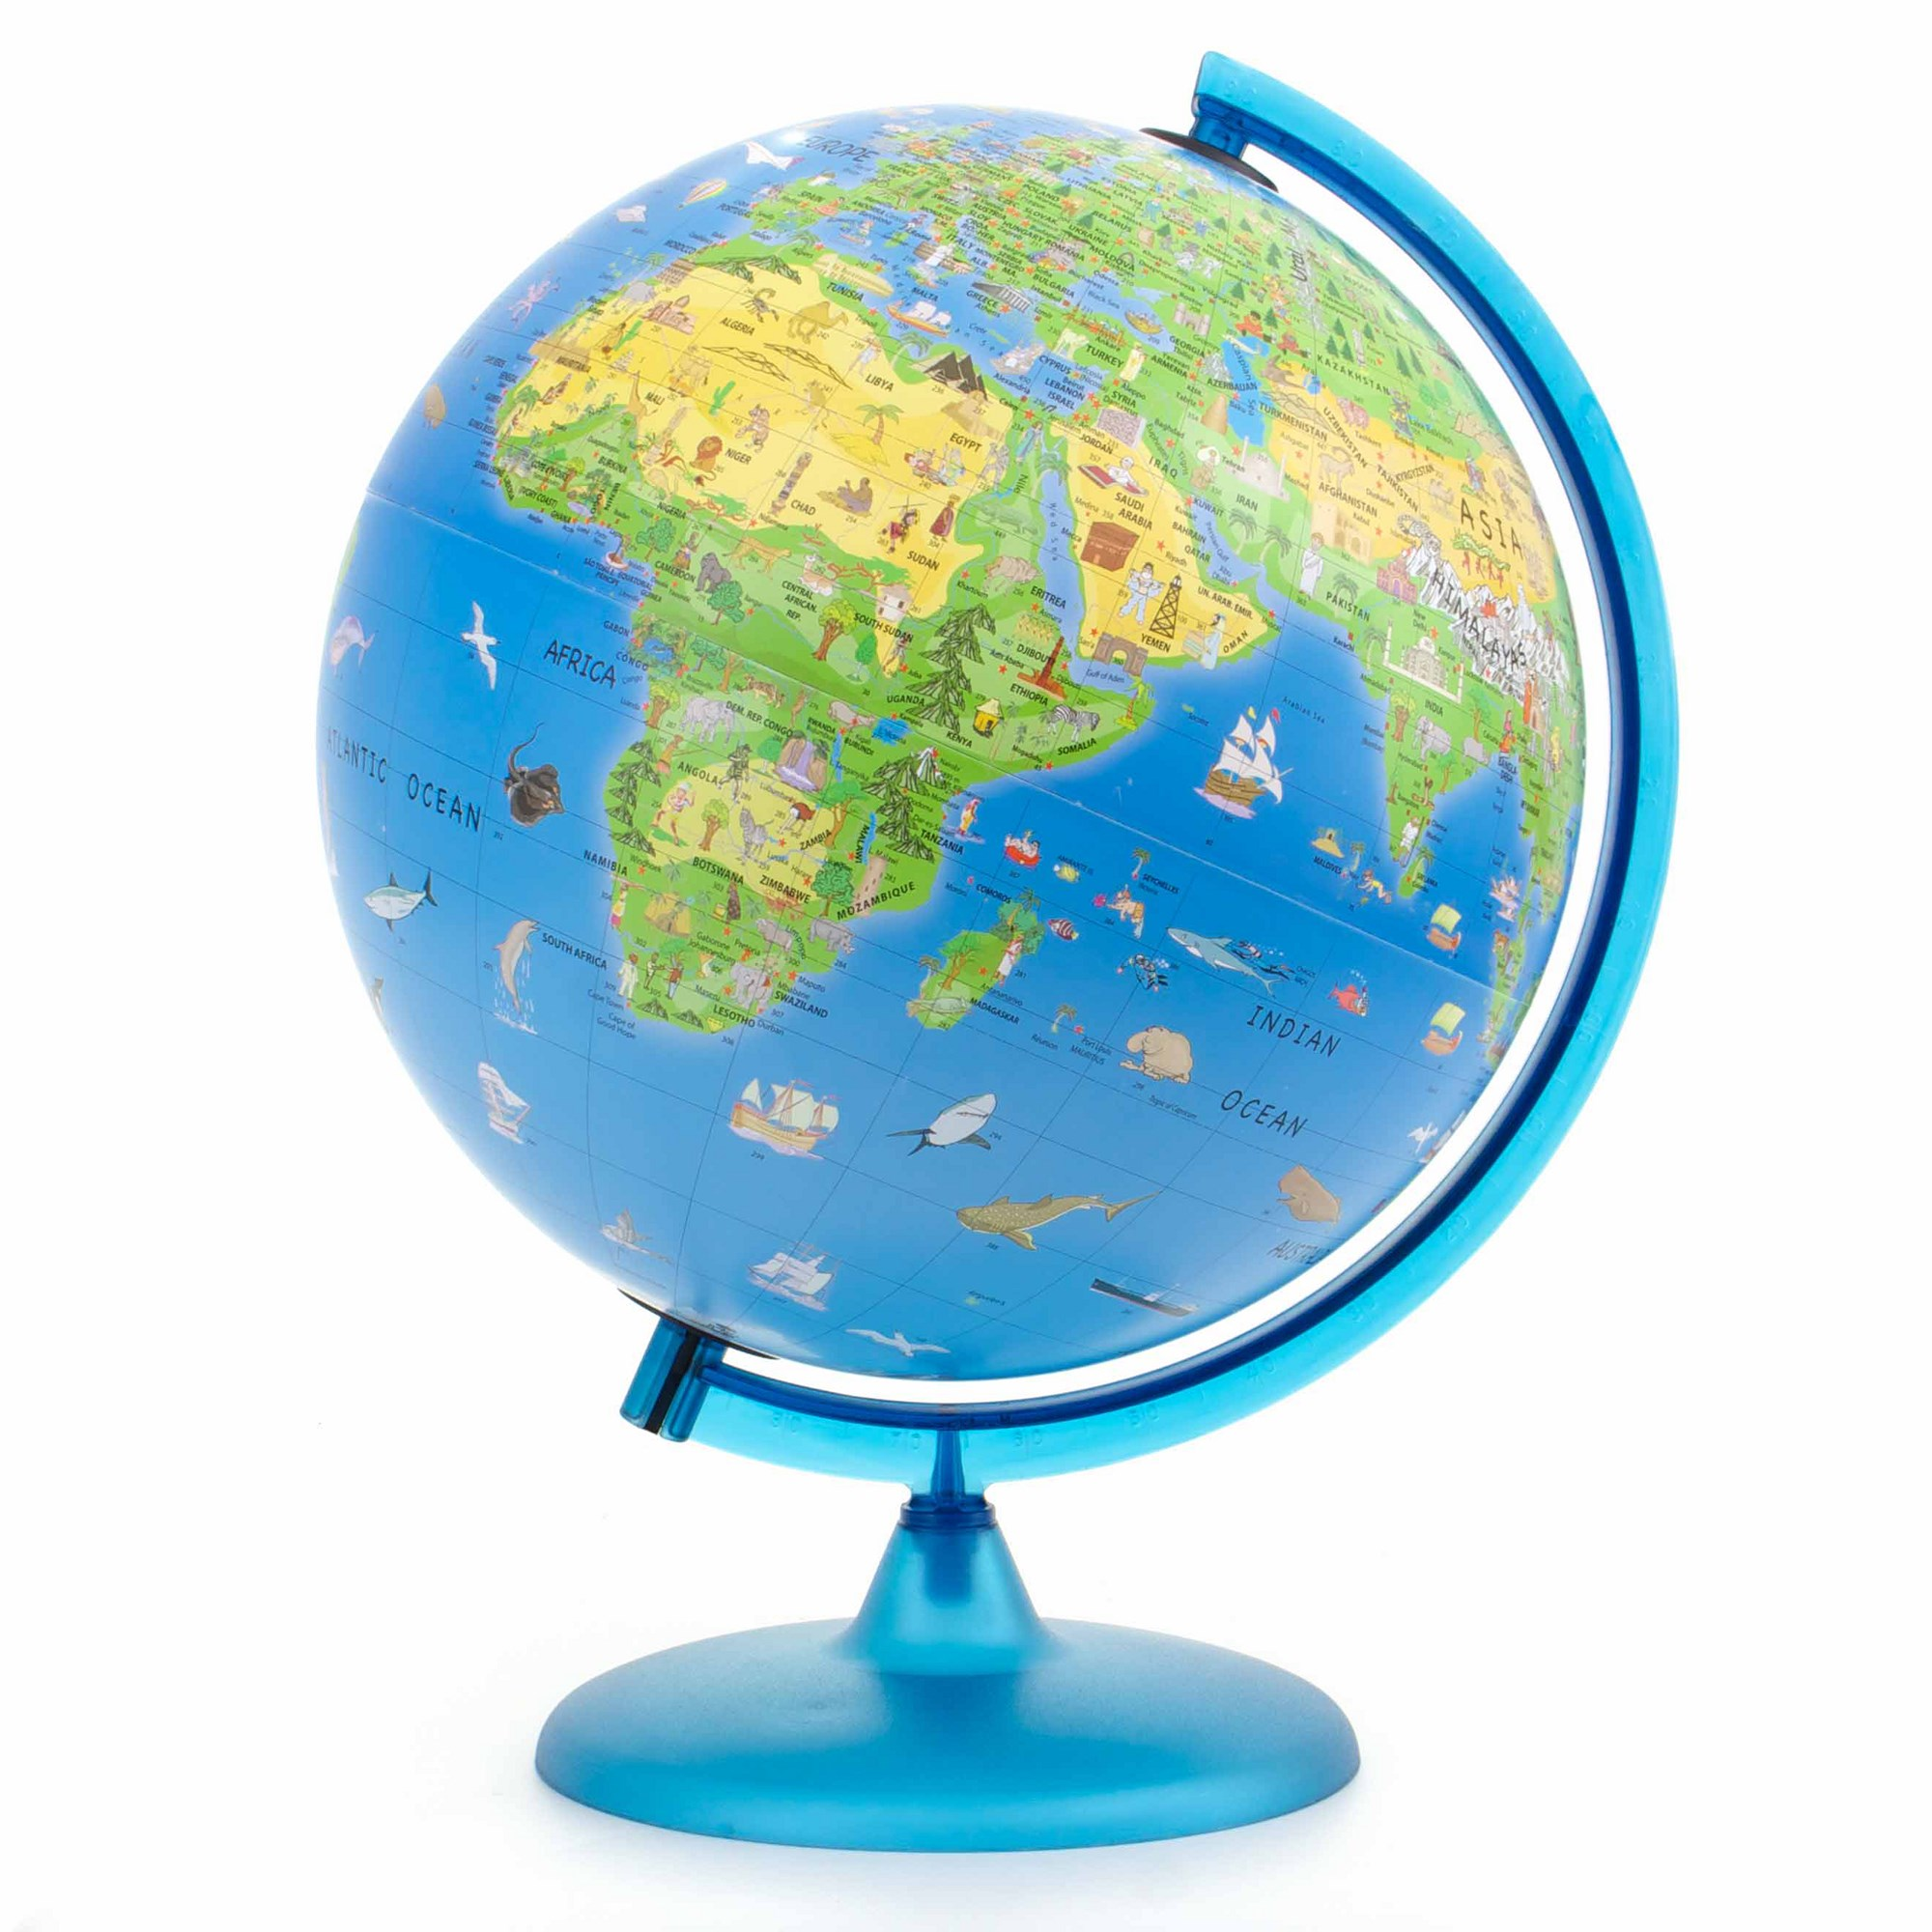 300mm Childrens World Globe